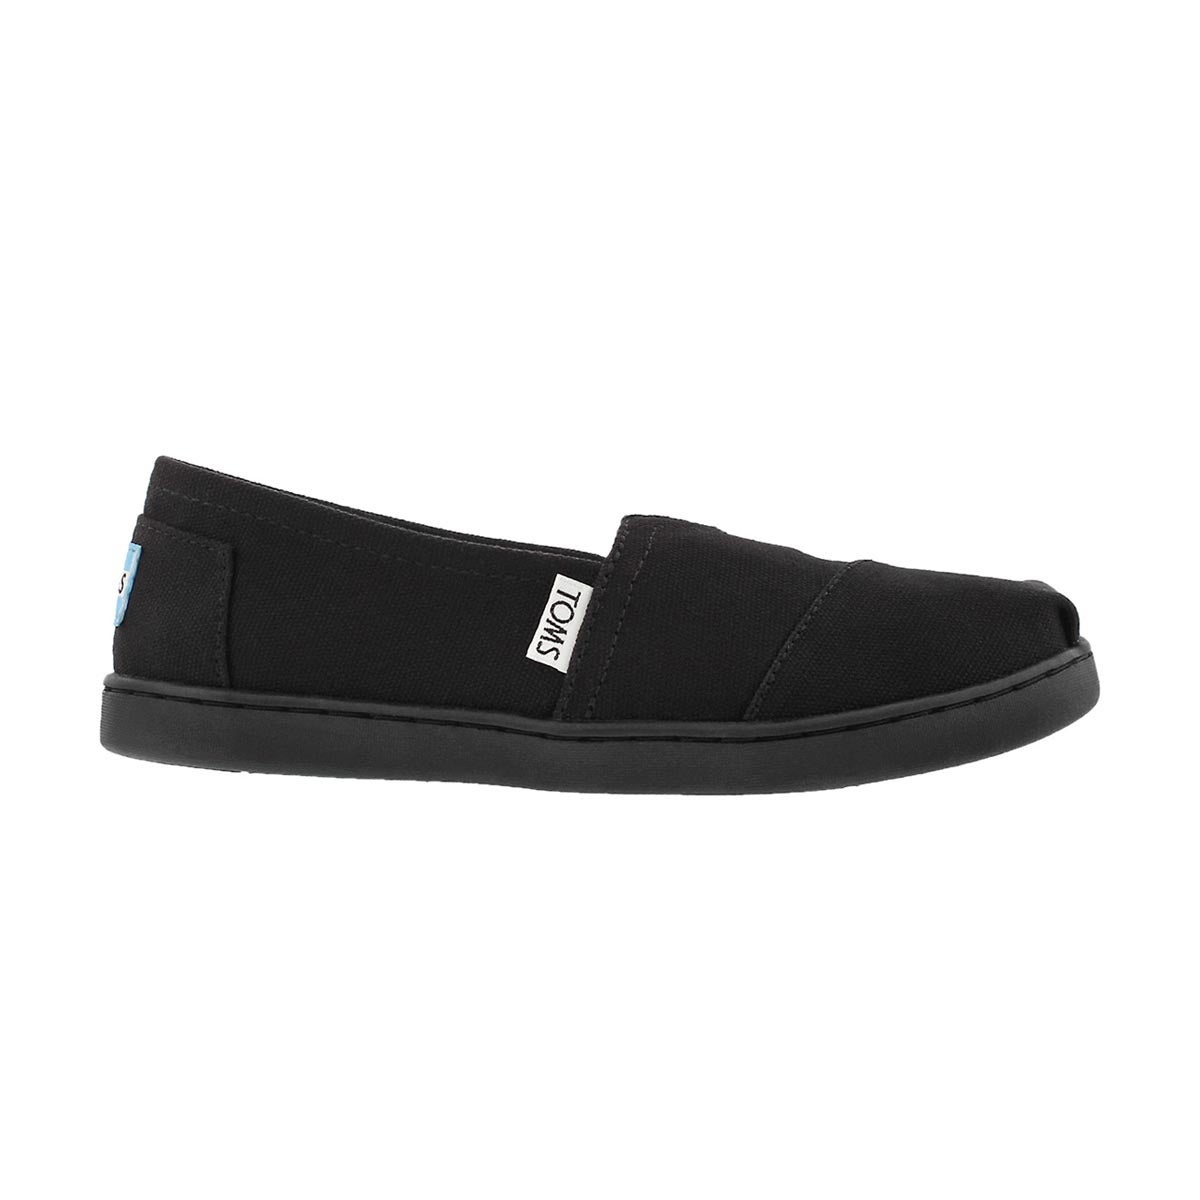 Grls Classic black canvas loafer